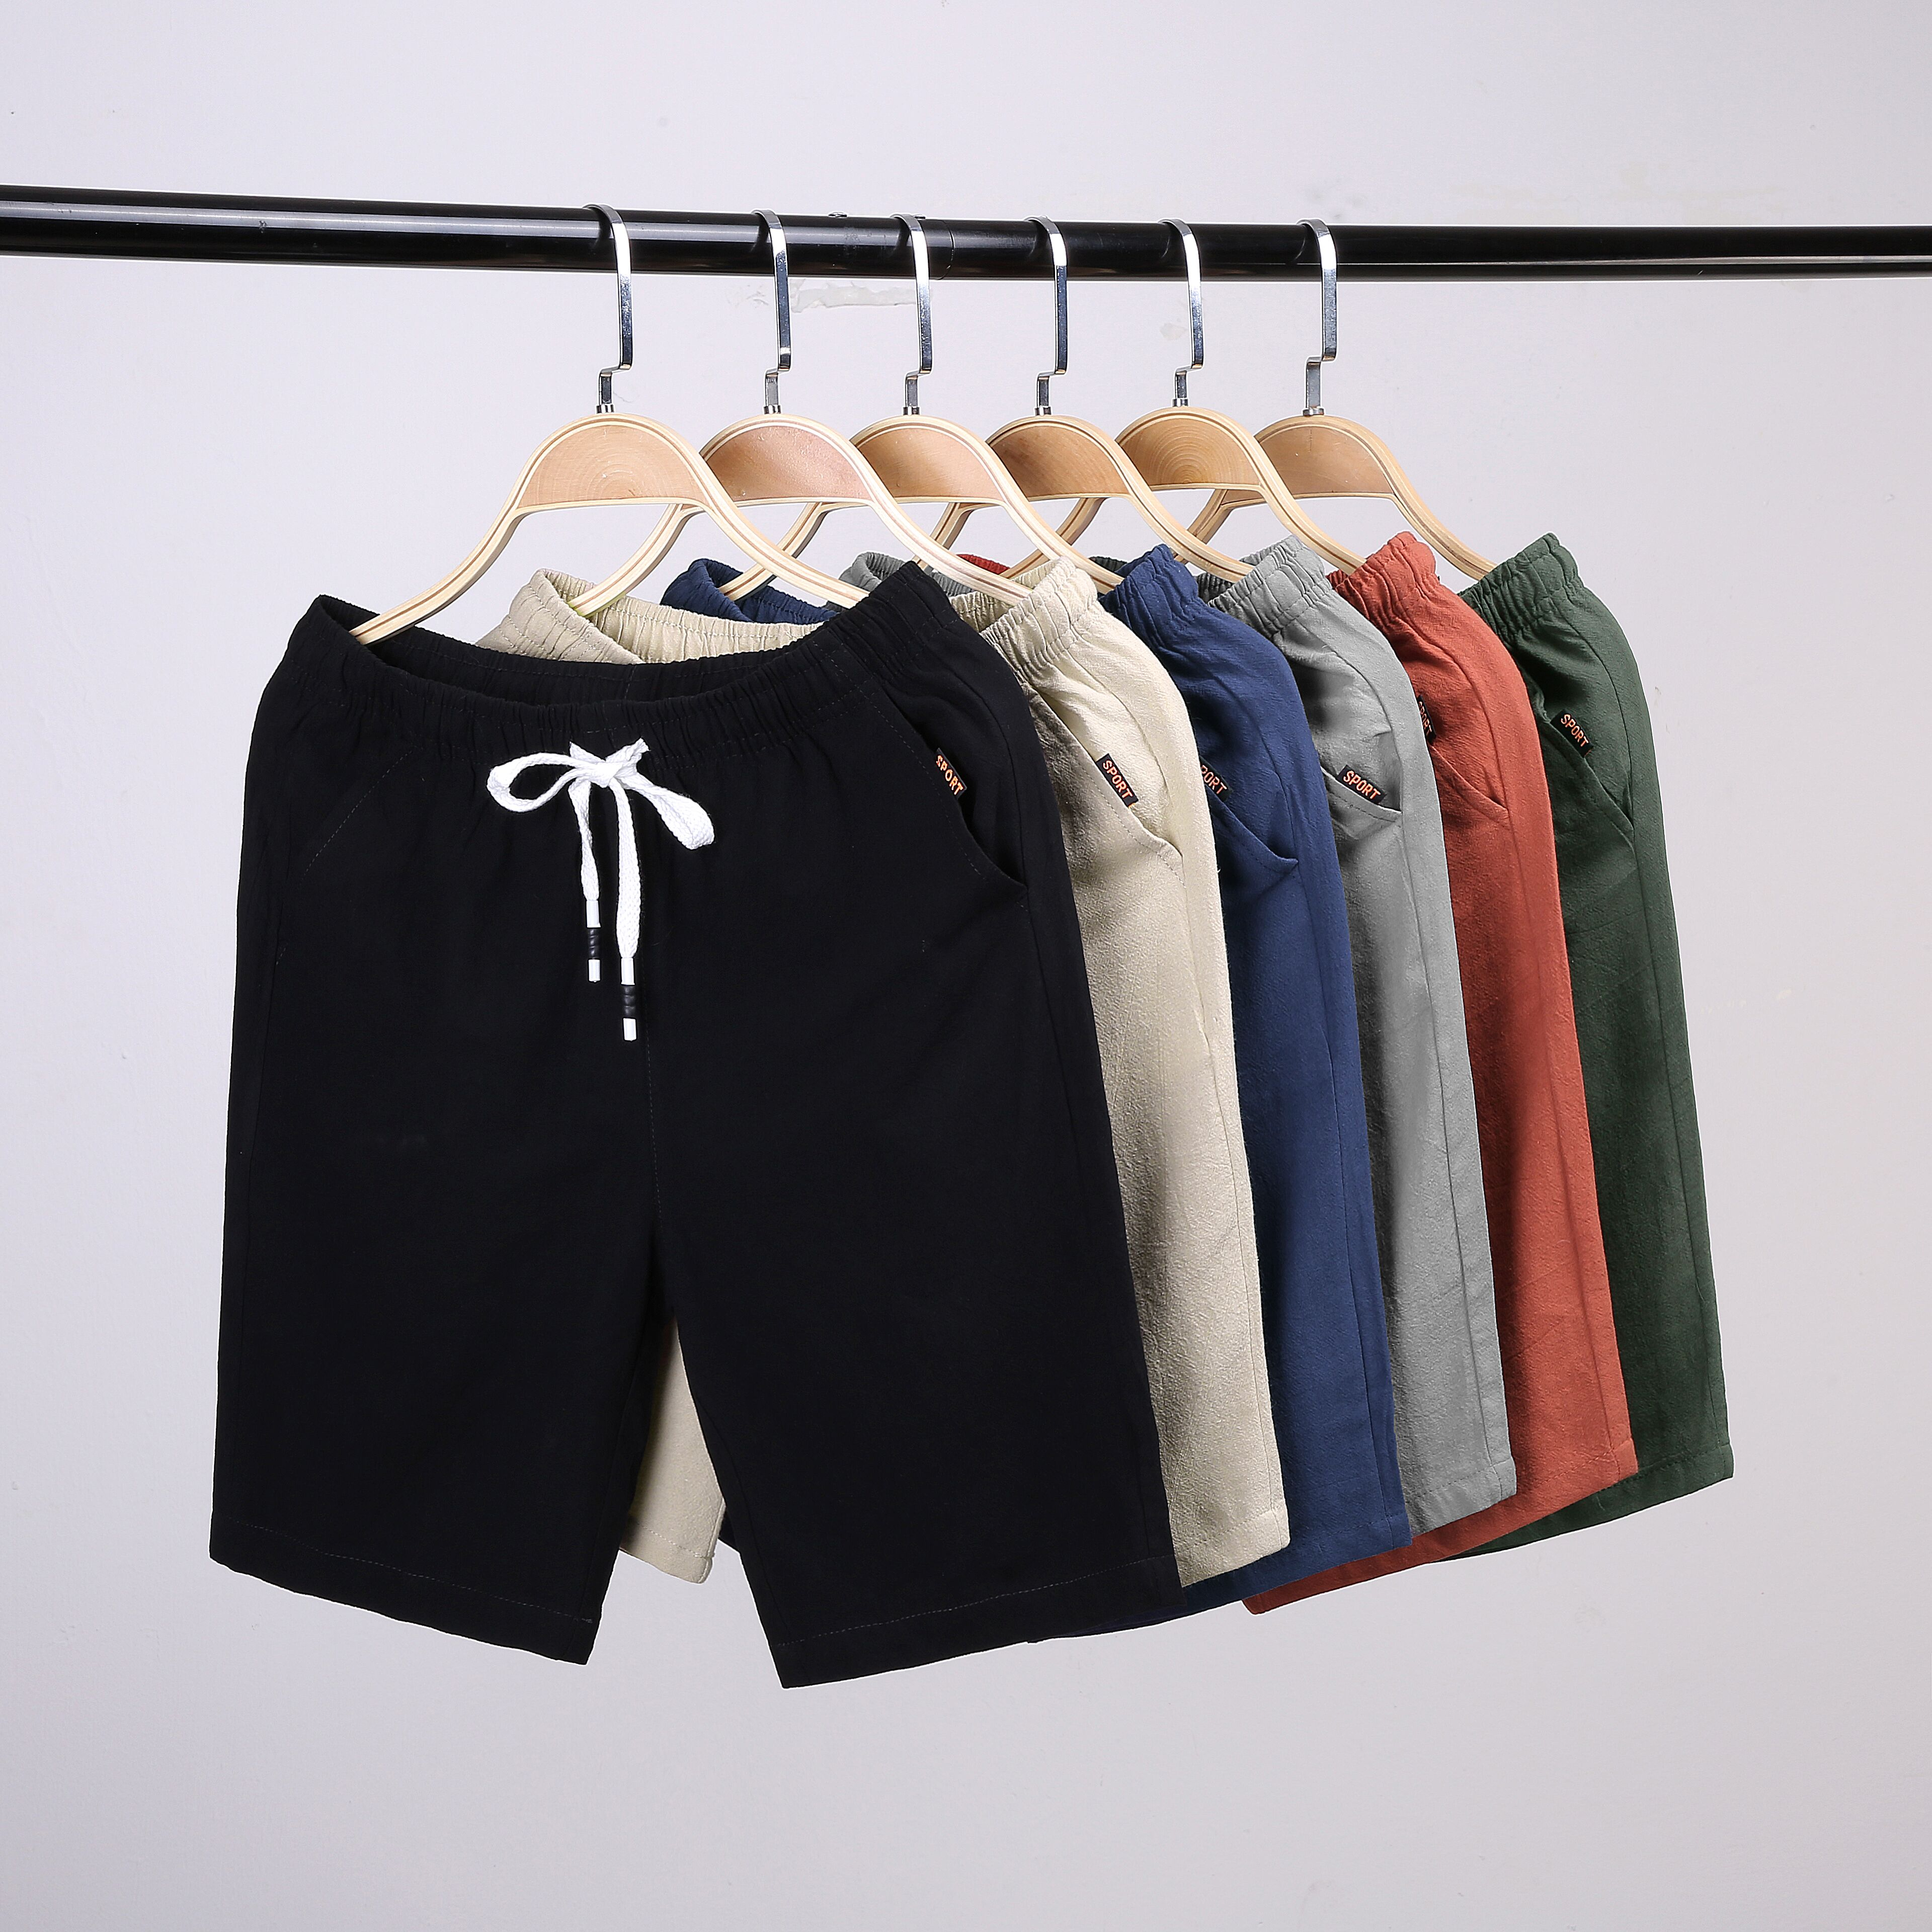 2020 Woodvoice Casual Shorts Men Clothes Summer Casual Men's Shorts Homme Cotton Bermuda Short Trousers Brand Clothing Puls Size